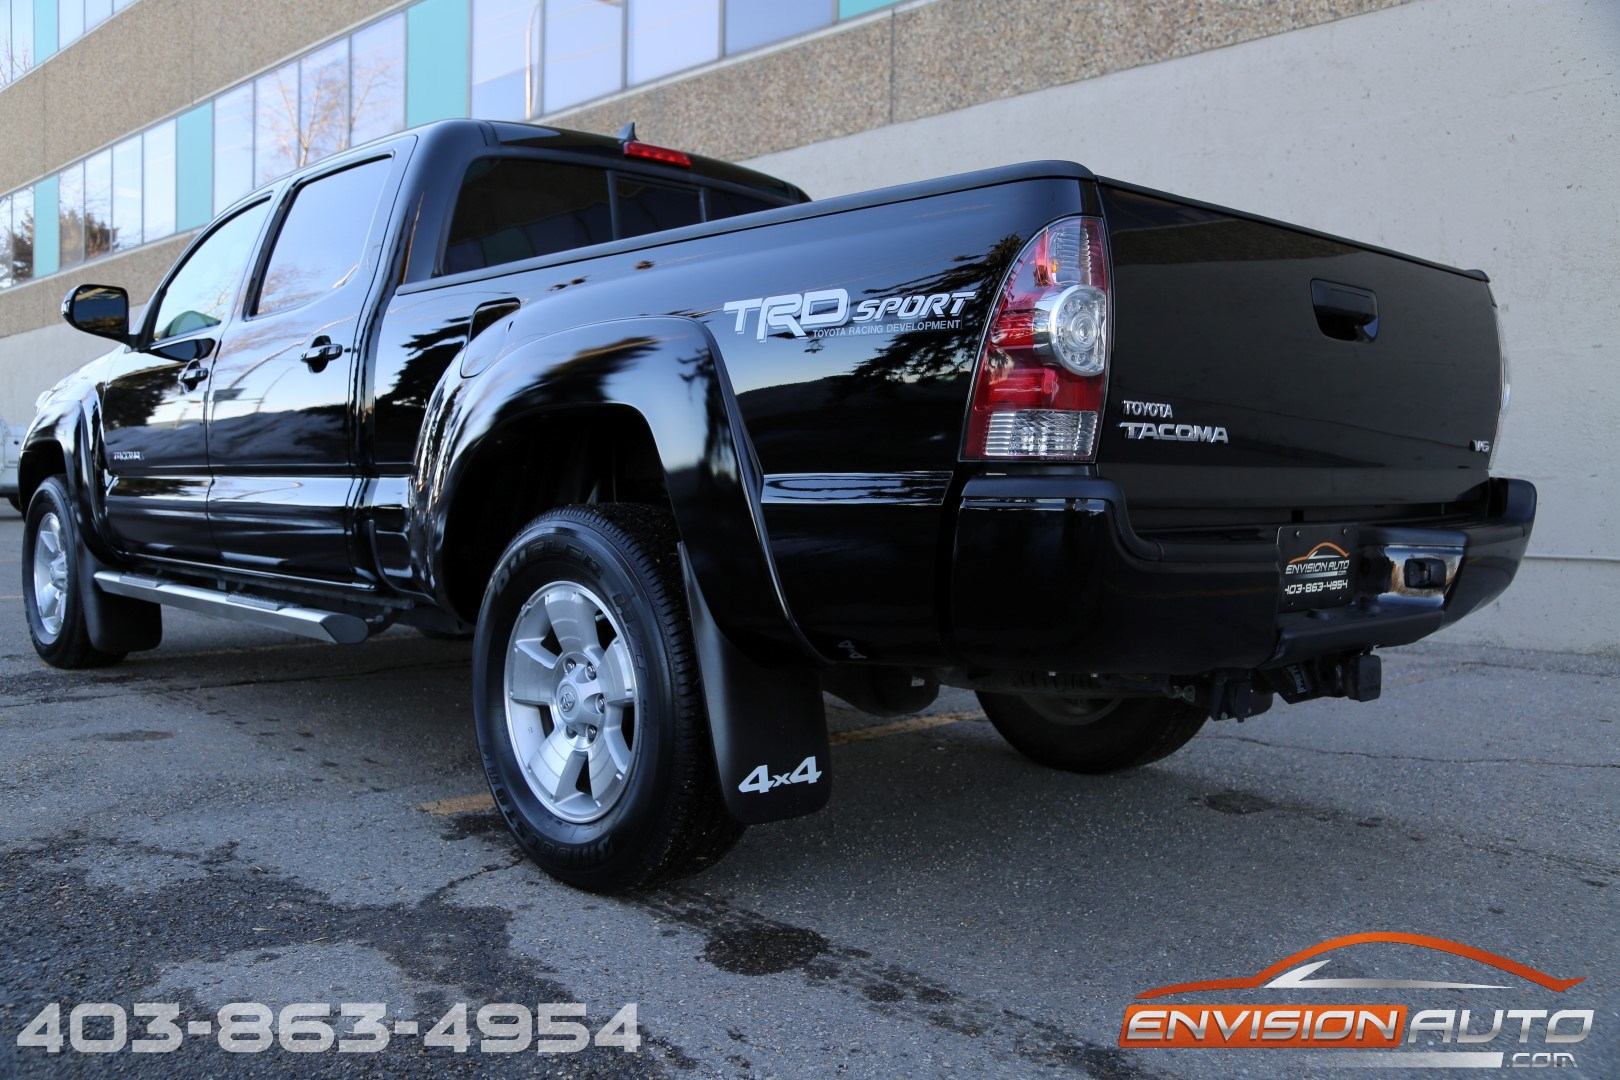 2014 toyota tacoma v6 trd sport double cab long box 4wd envision auto calgary highline. Black Bedroom Furniture Sets. Home Design Ideas